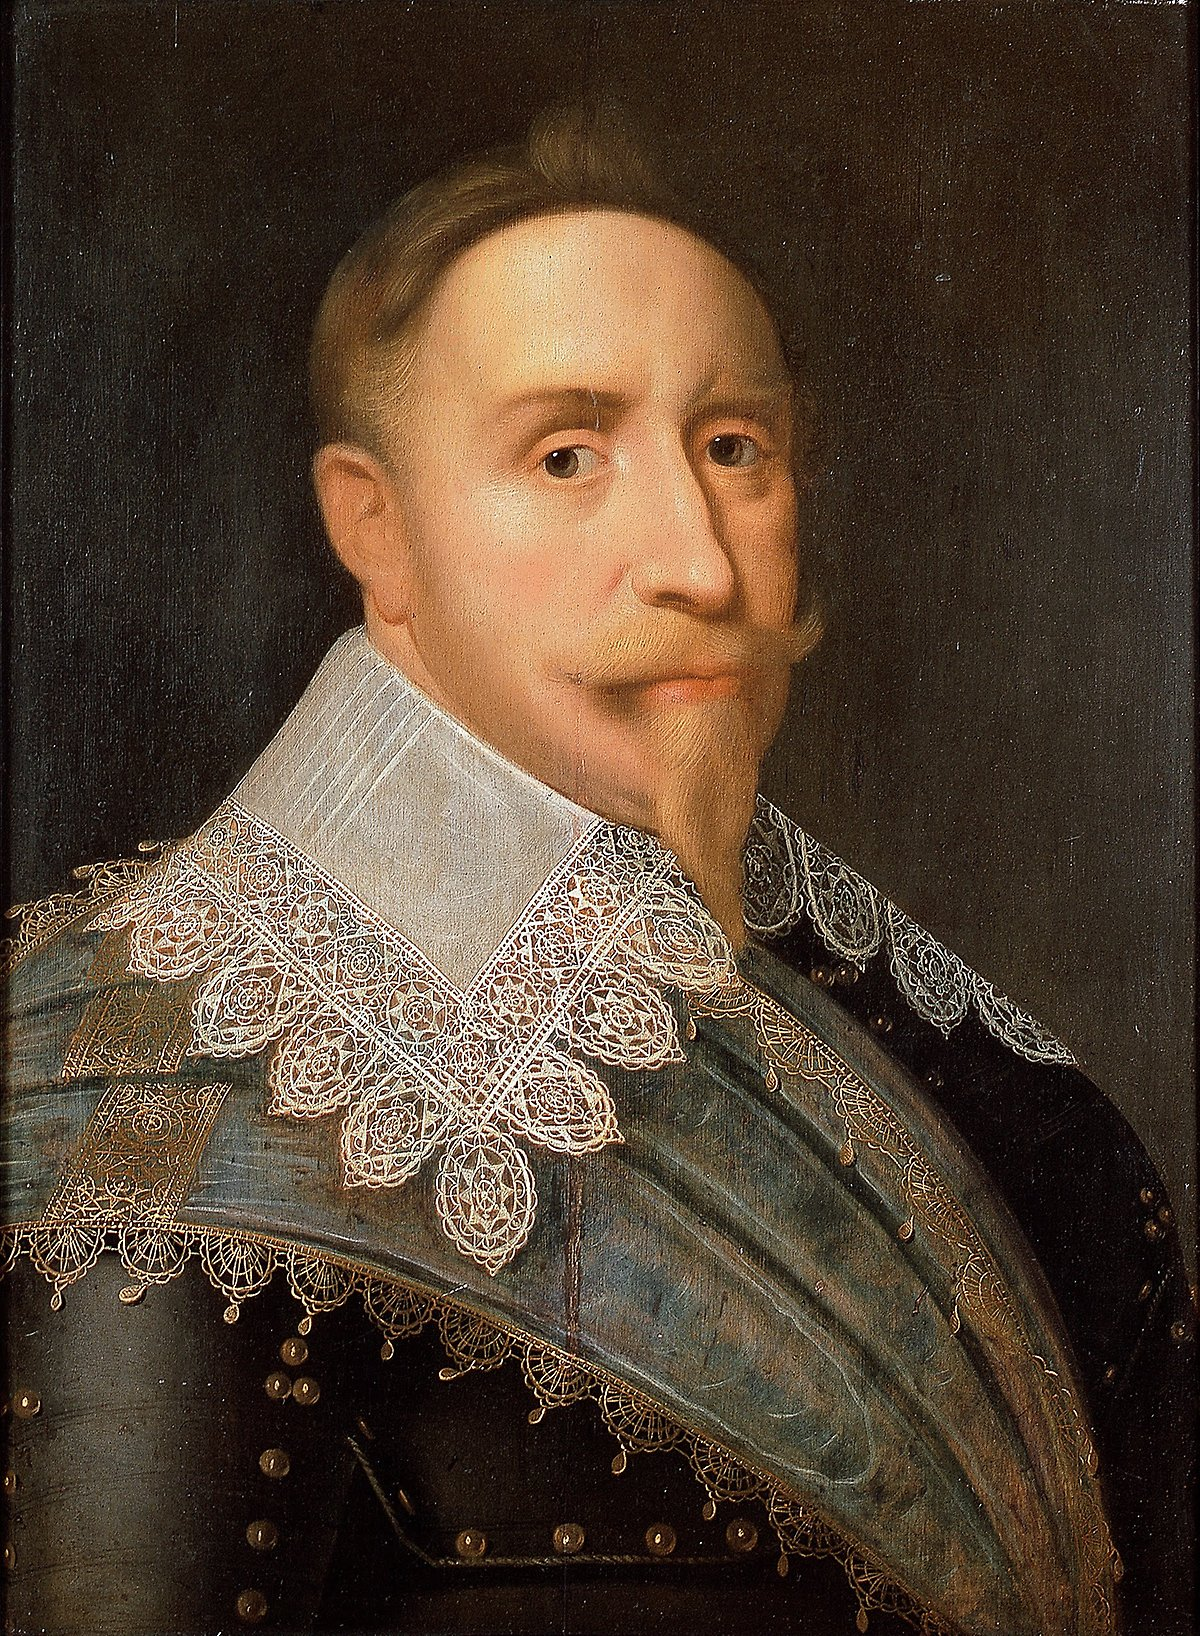 Gustaf II Adolf Attributed_to_Jacob_Hoefnagel_-_Gustavus_Adolphus,_King_of_Sweden_1611-1632_-_Google_Art_Project Wikimedia Commonds